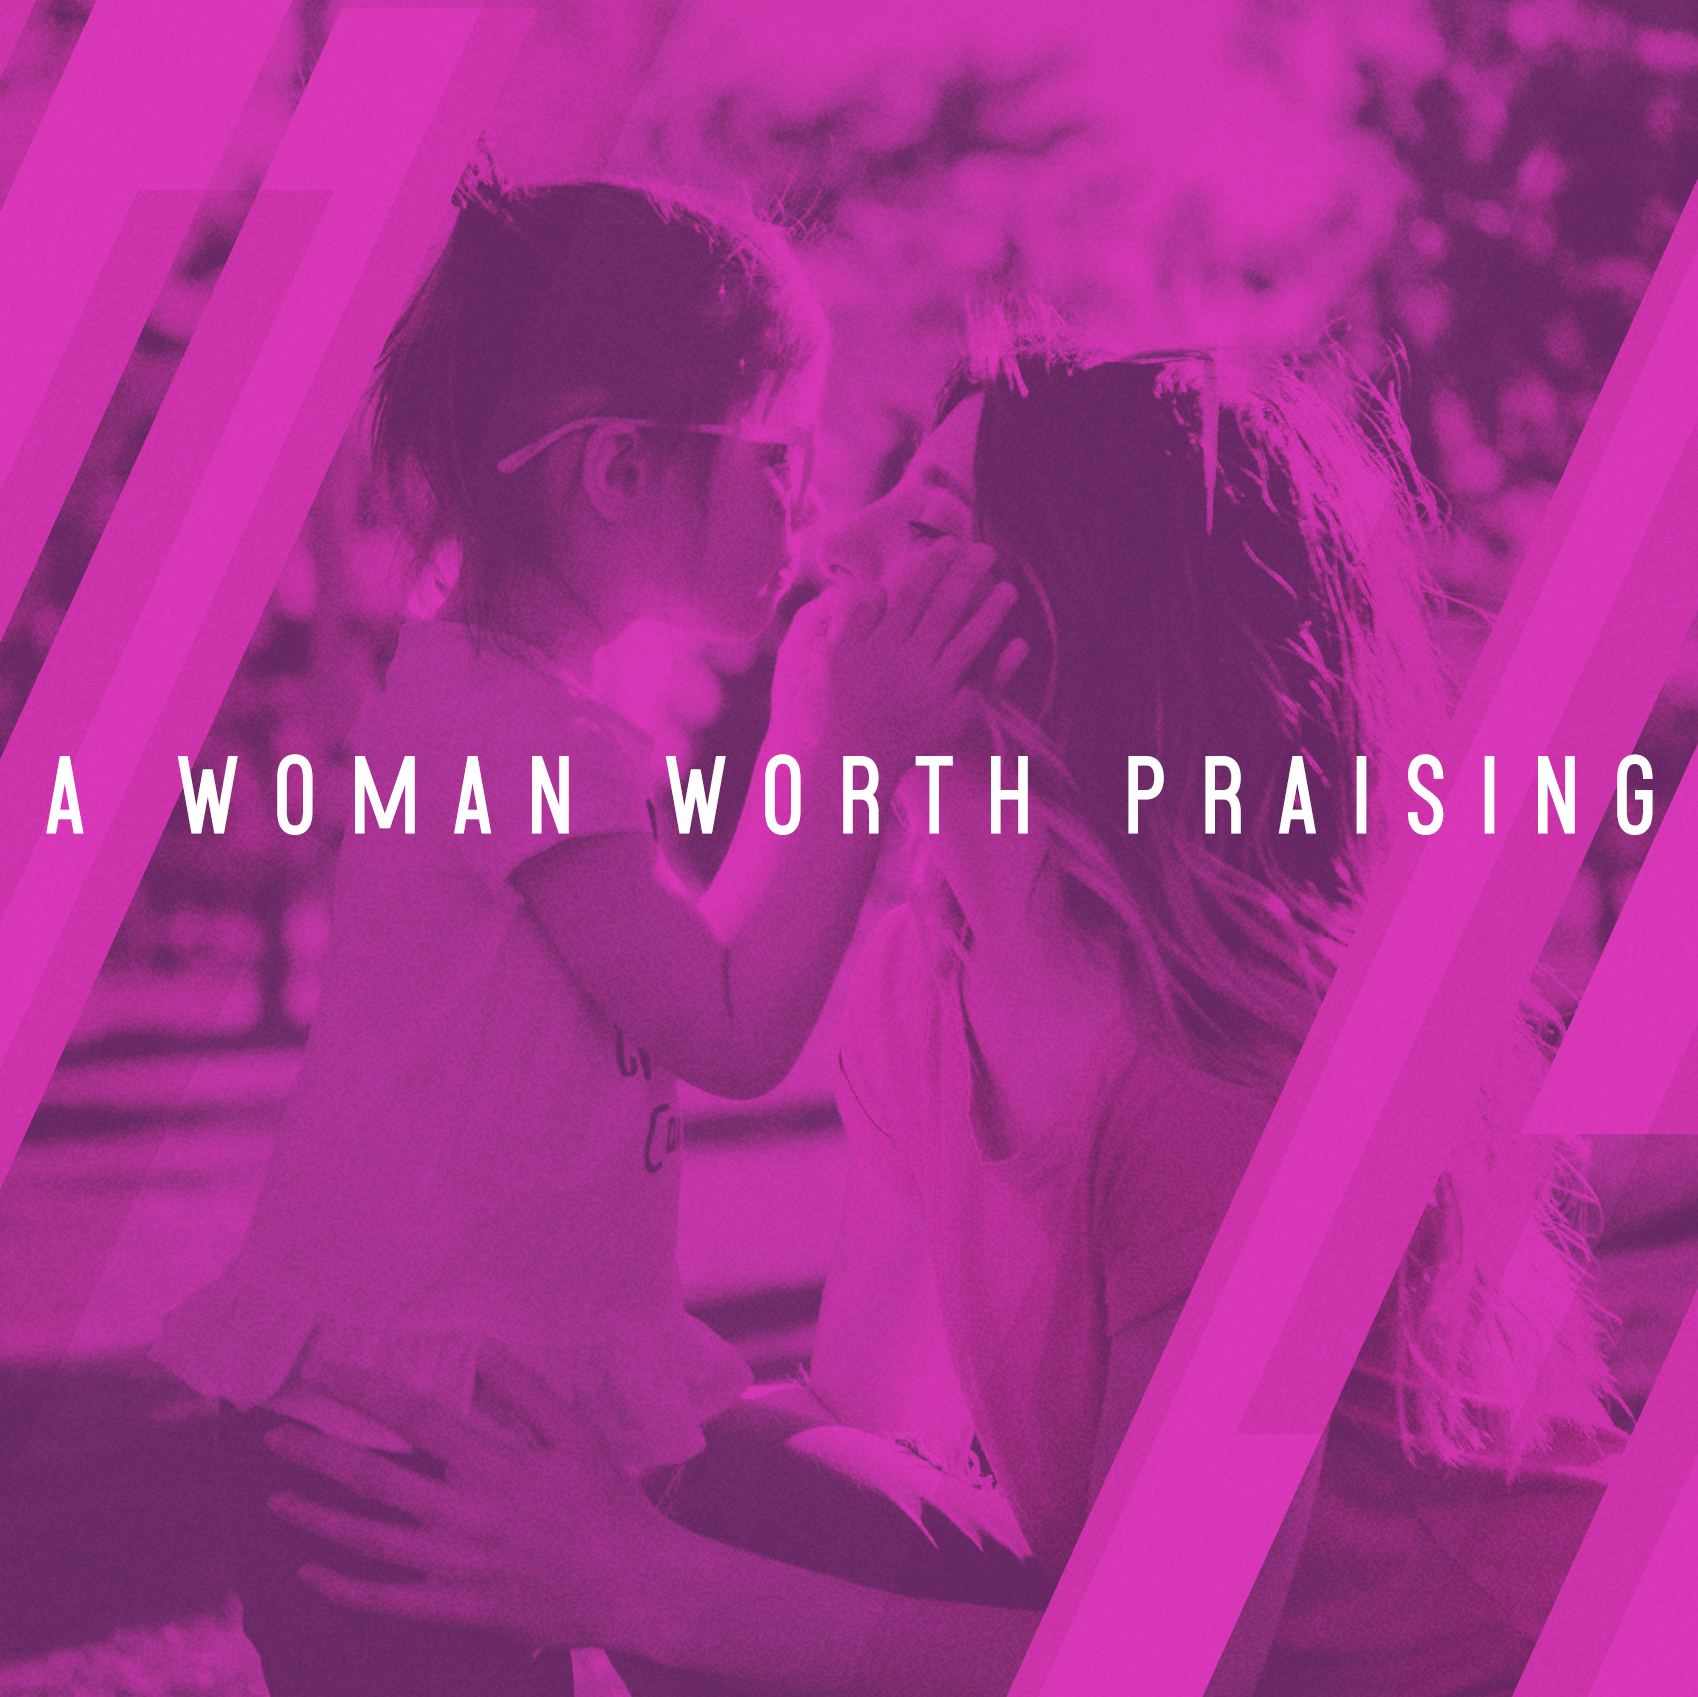 A Woman Worth Praising Image